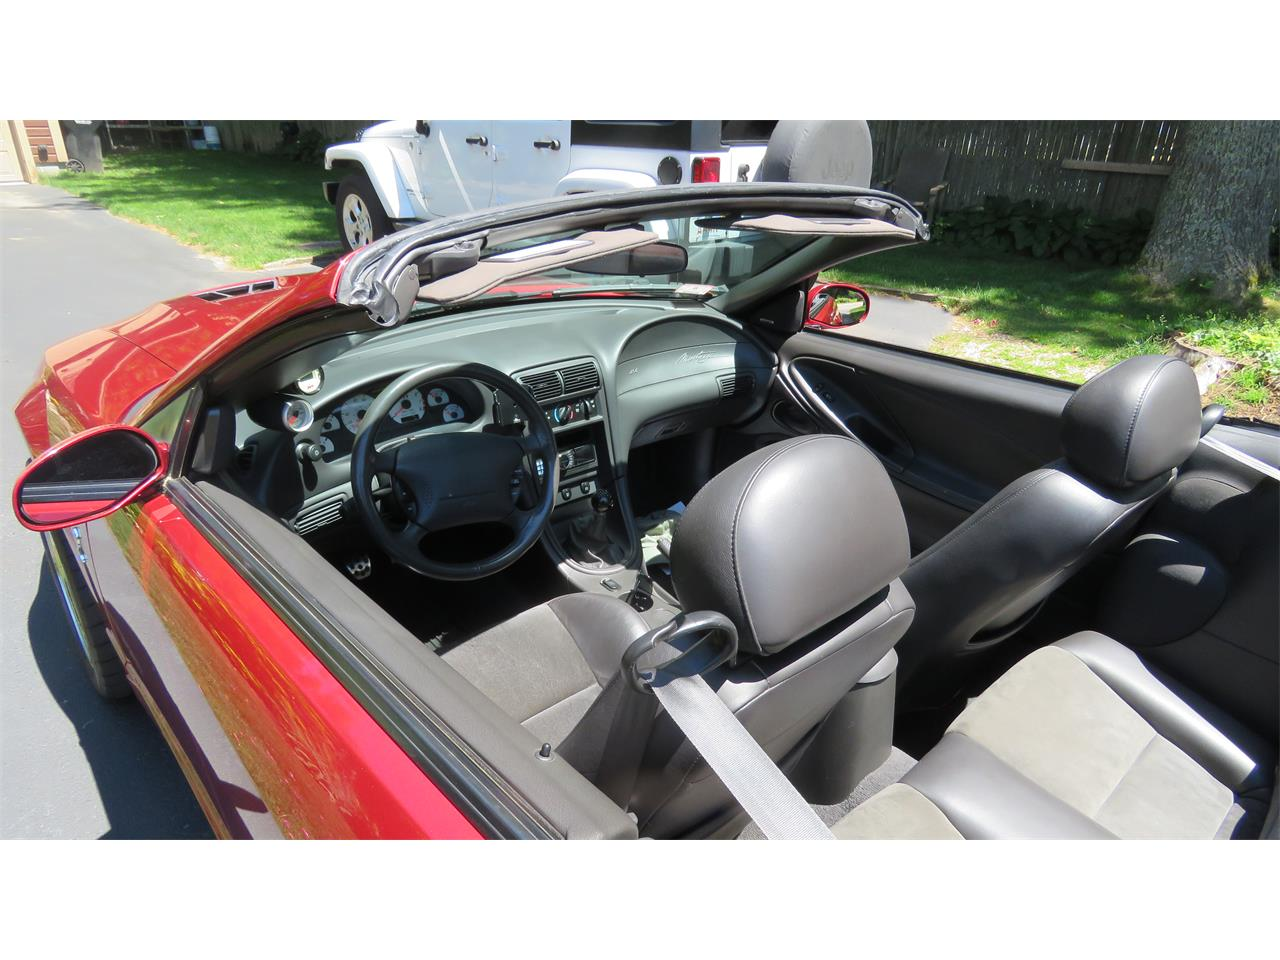 Large Picture of '04 Ford Mustang SVT Cobra - $23,000.00 Offered by a Private Seller - QBSO